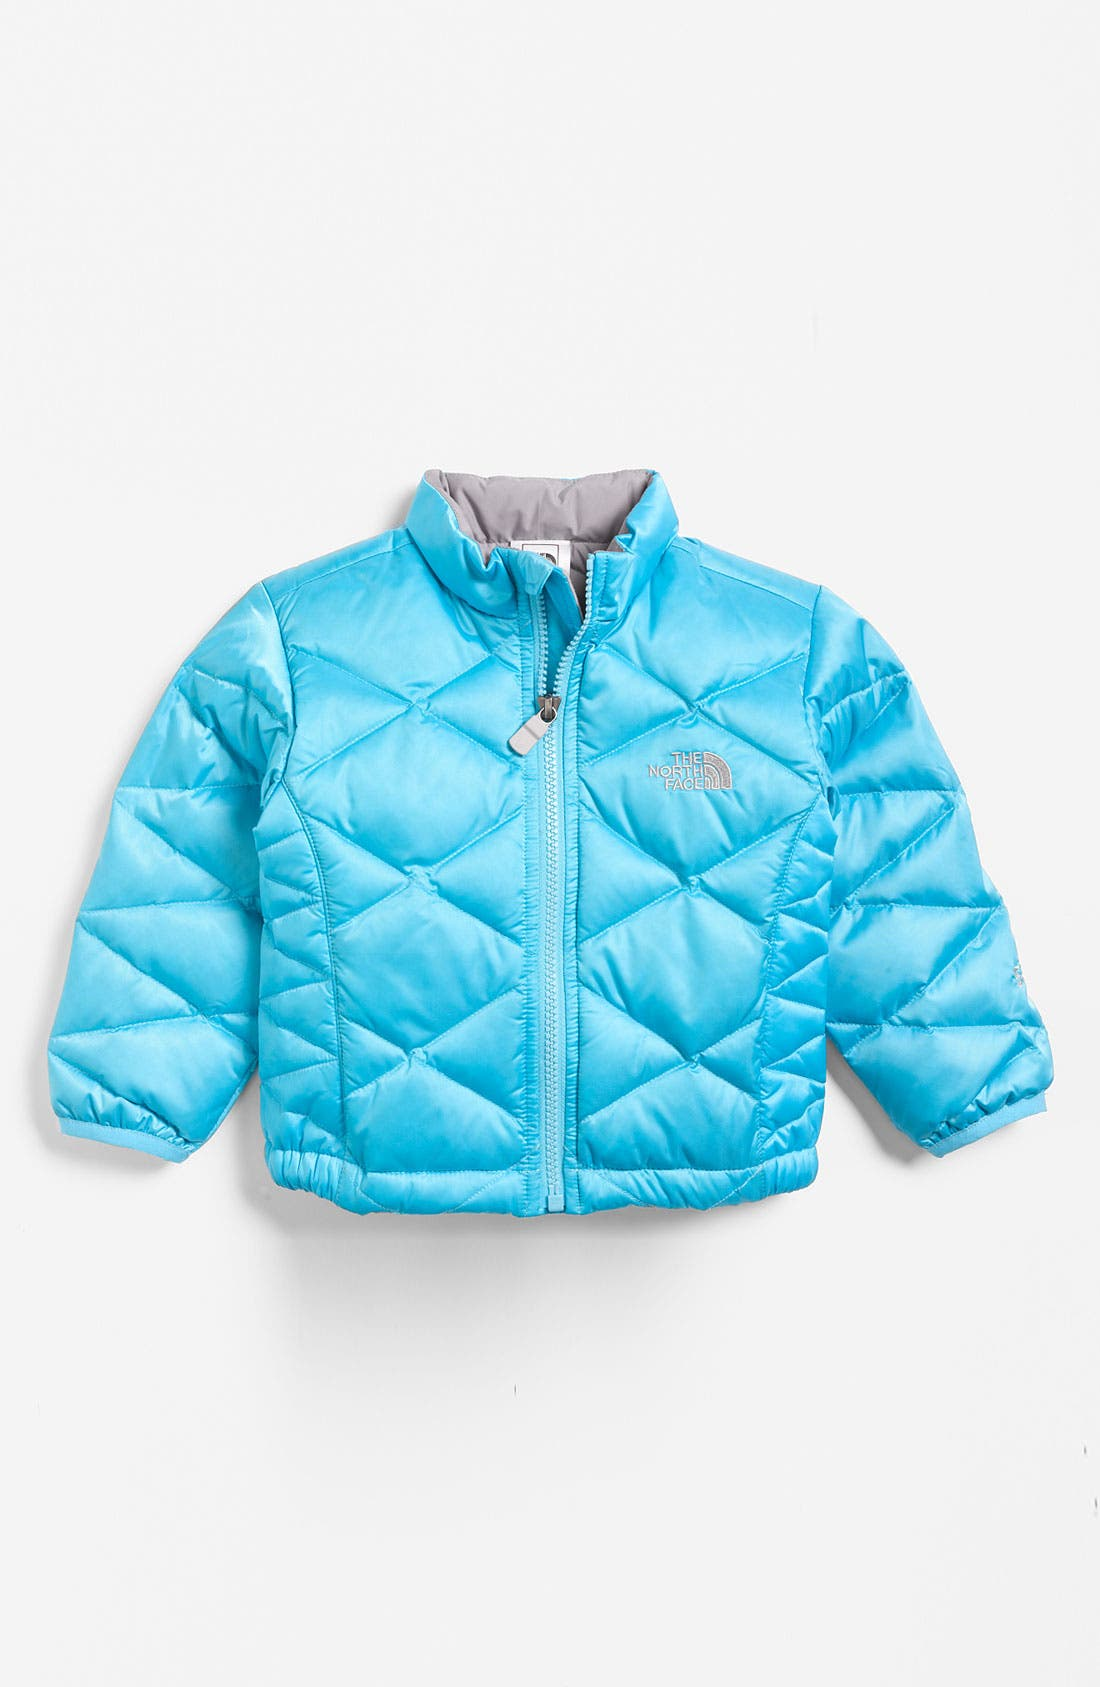 Main Image - The North Face 'Aconcagua' Jacket (Infant)